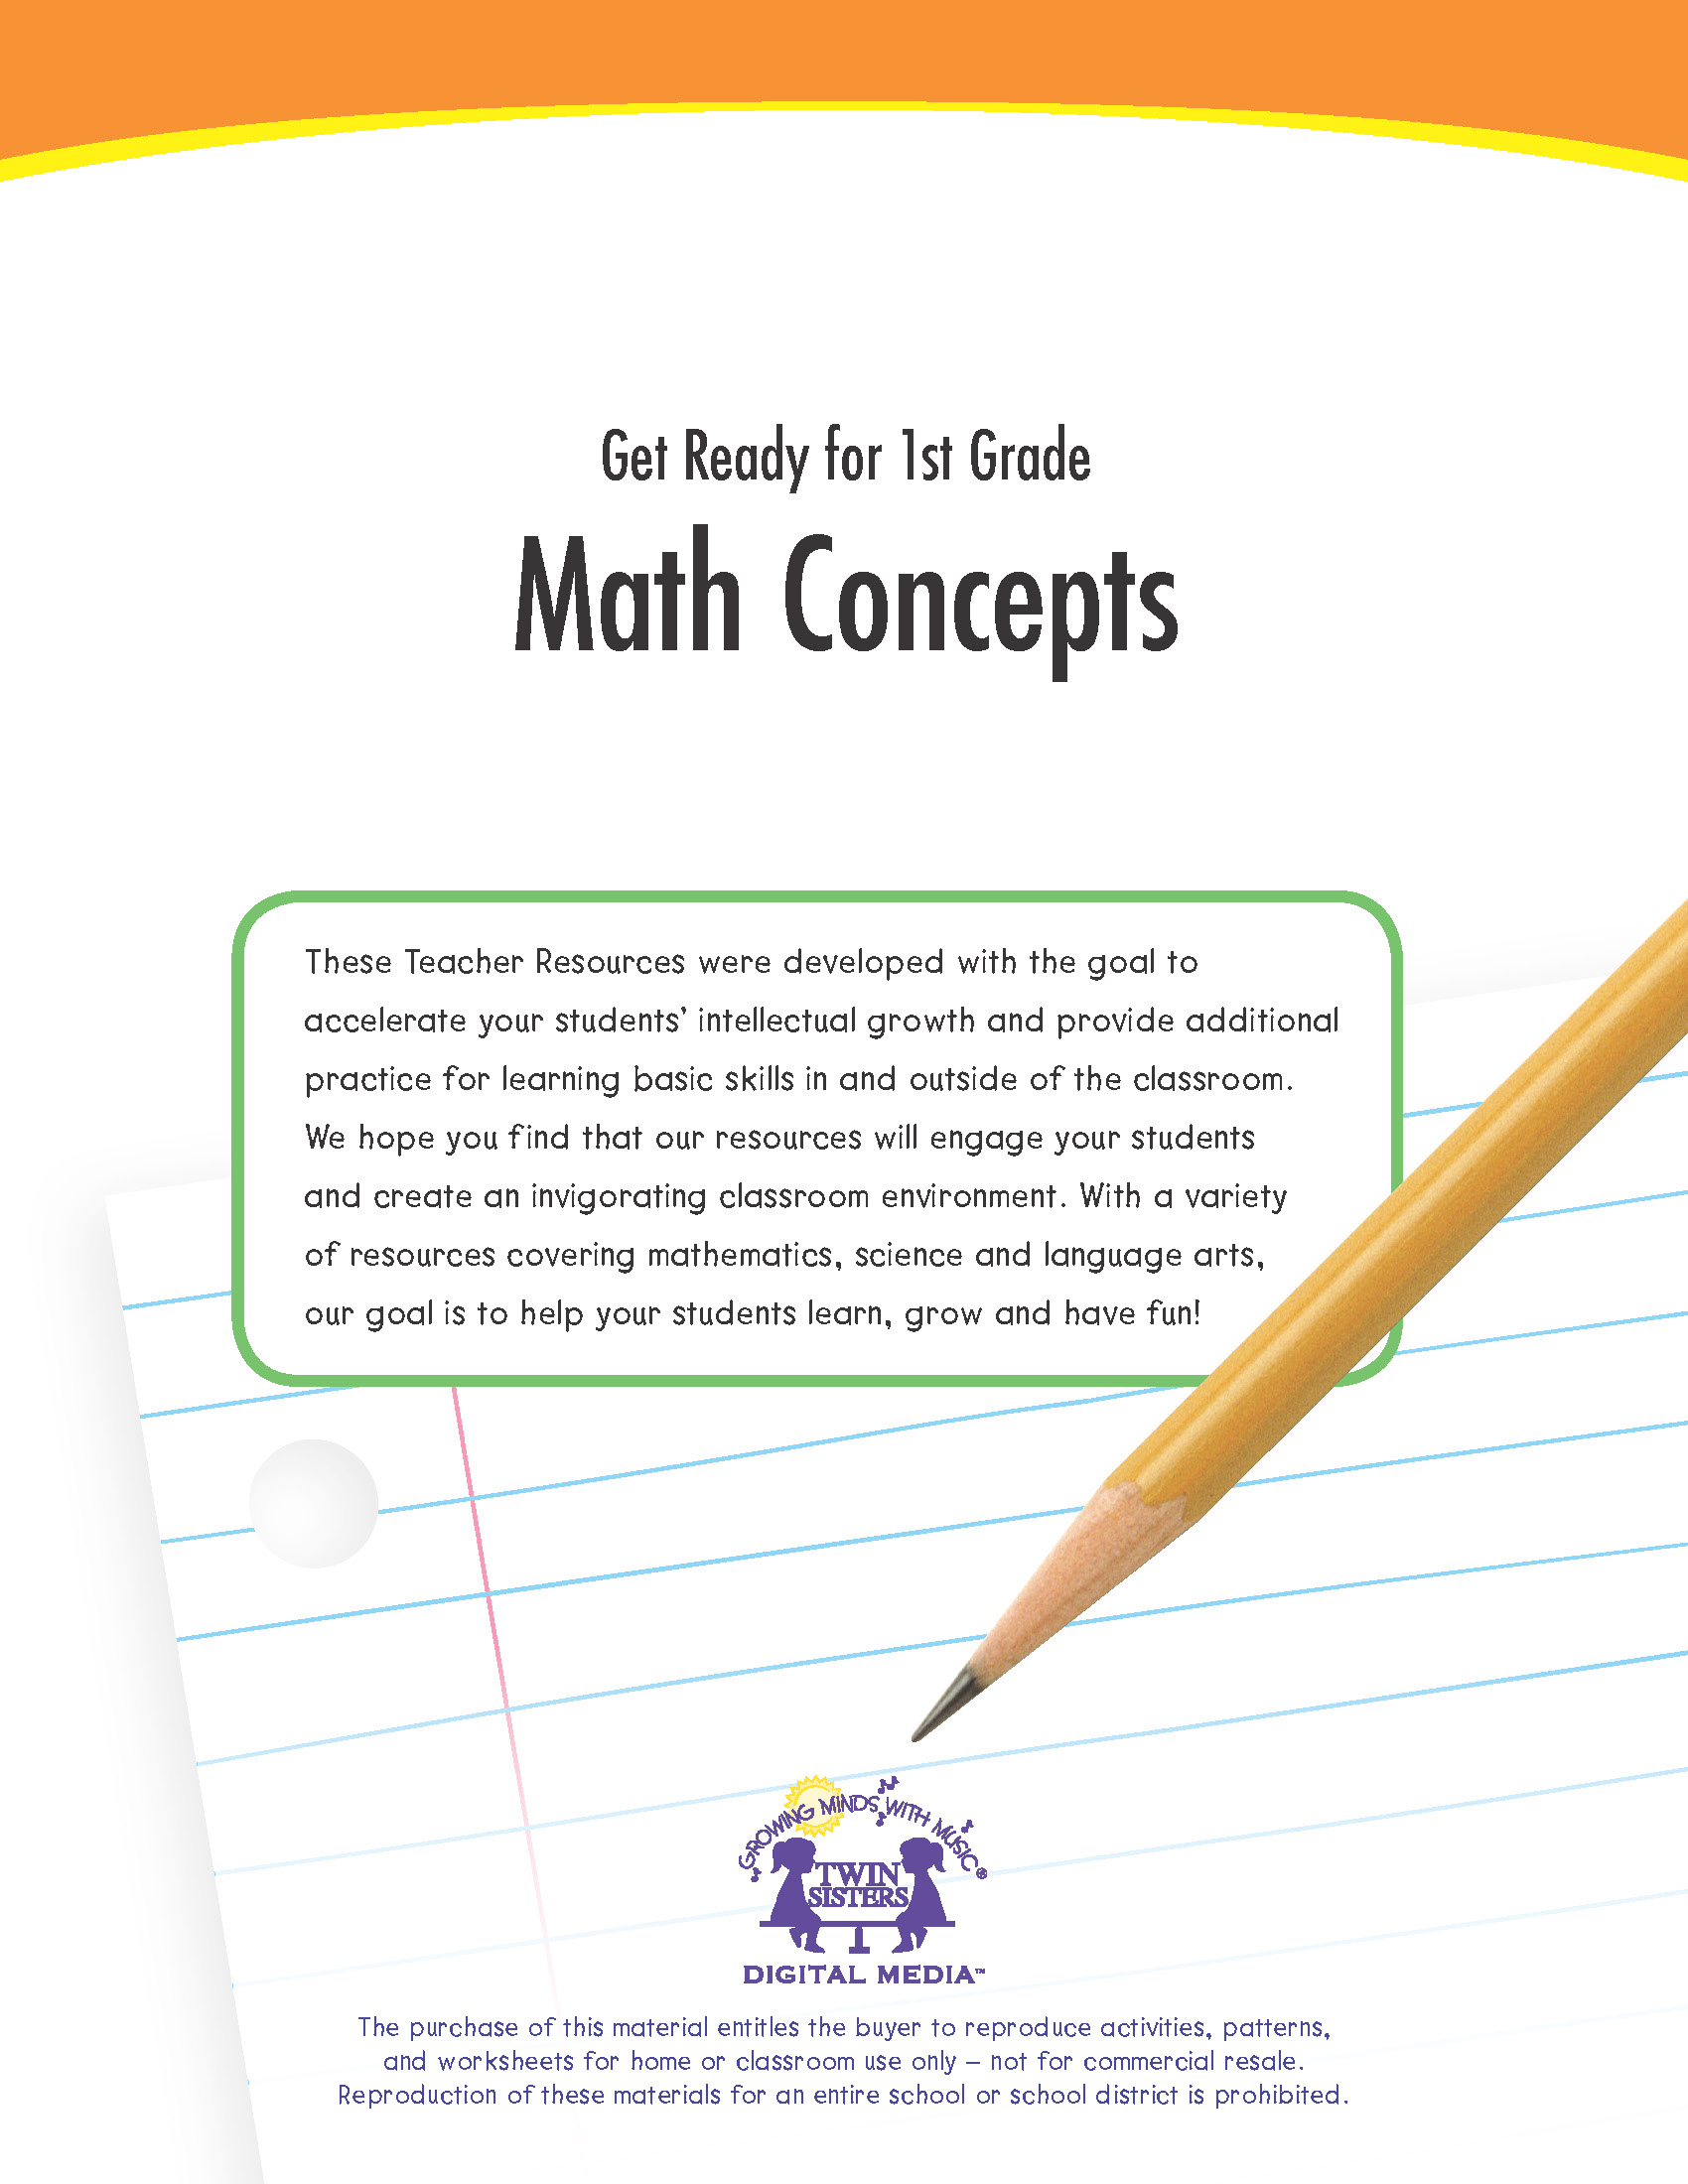 Get Ready For 1st Grade Math Concepts